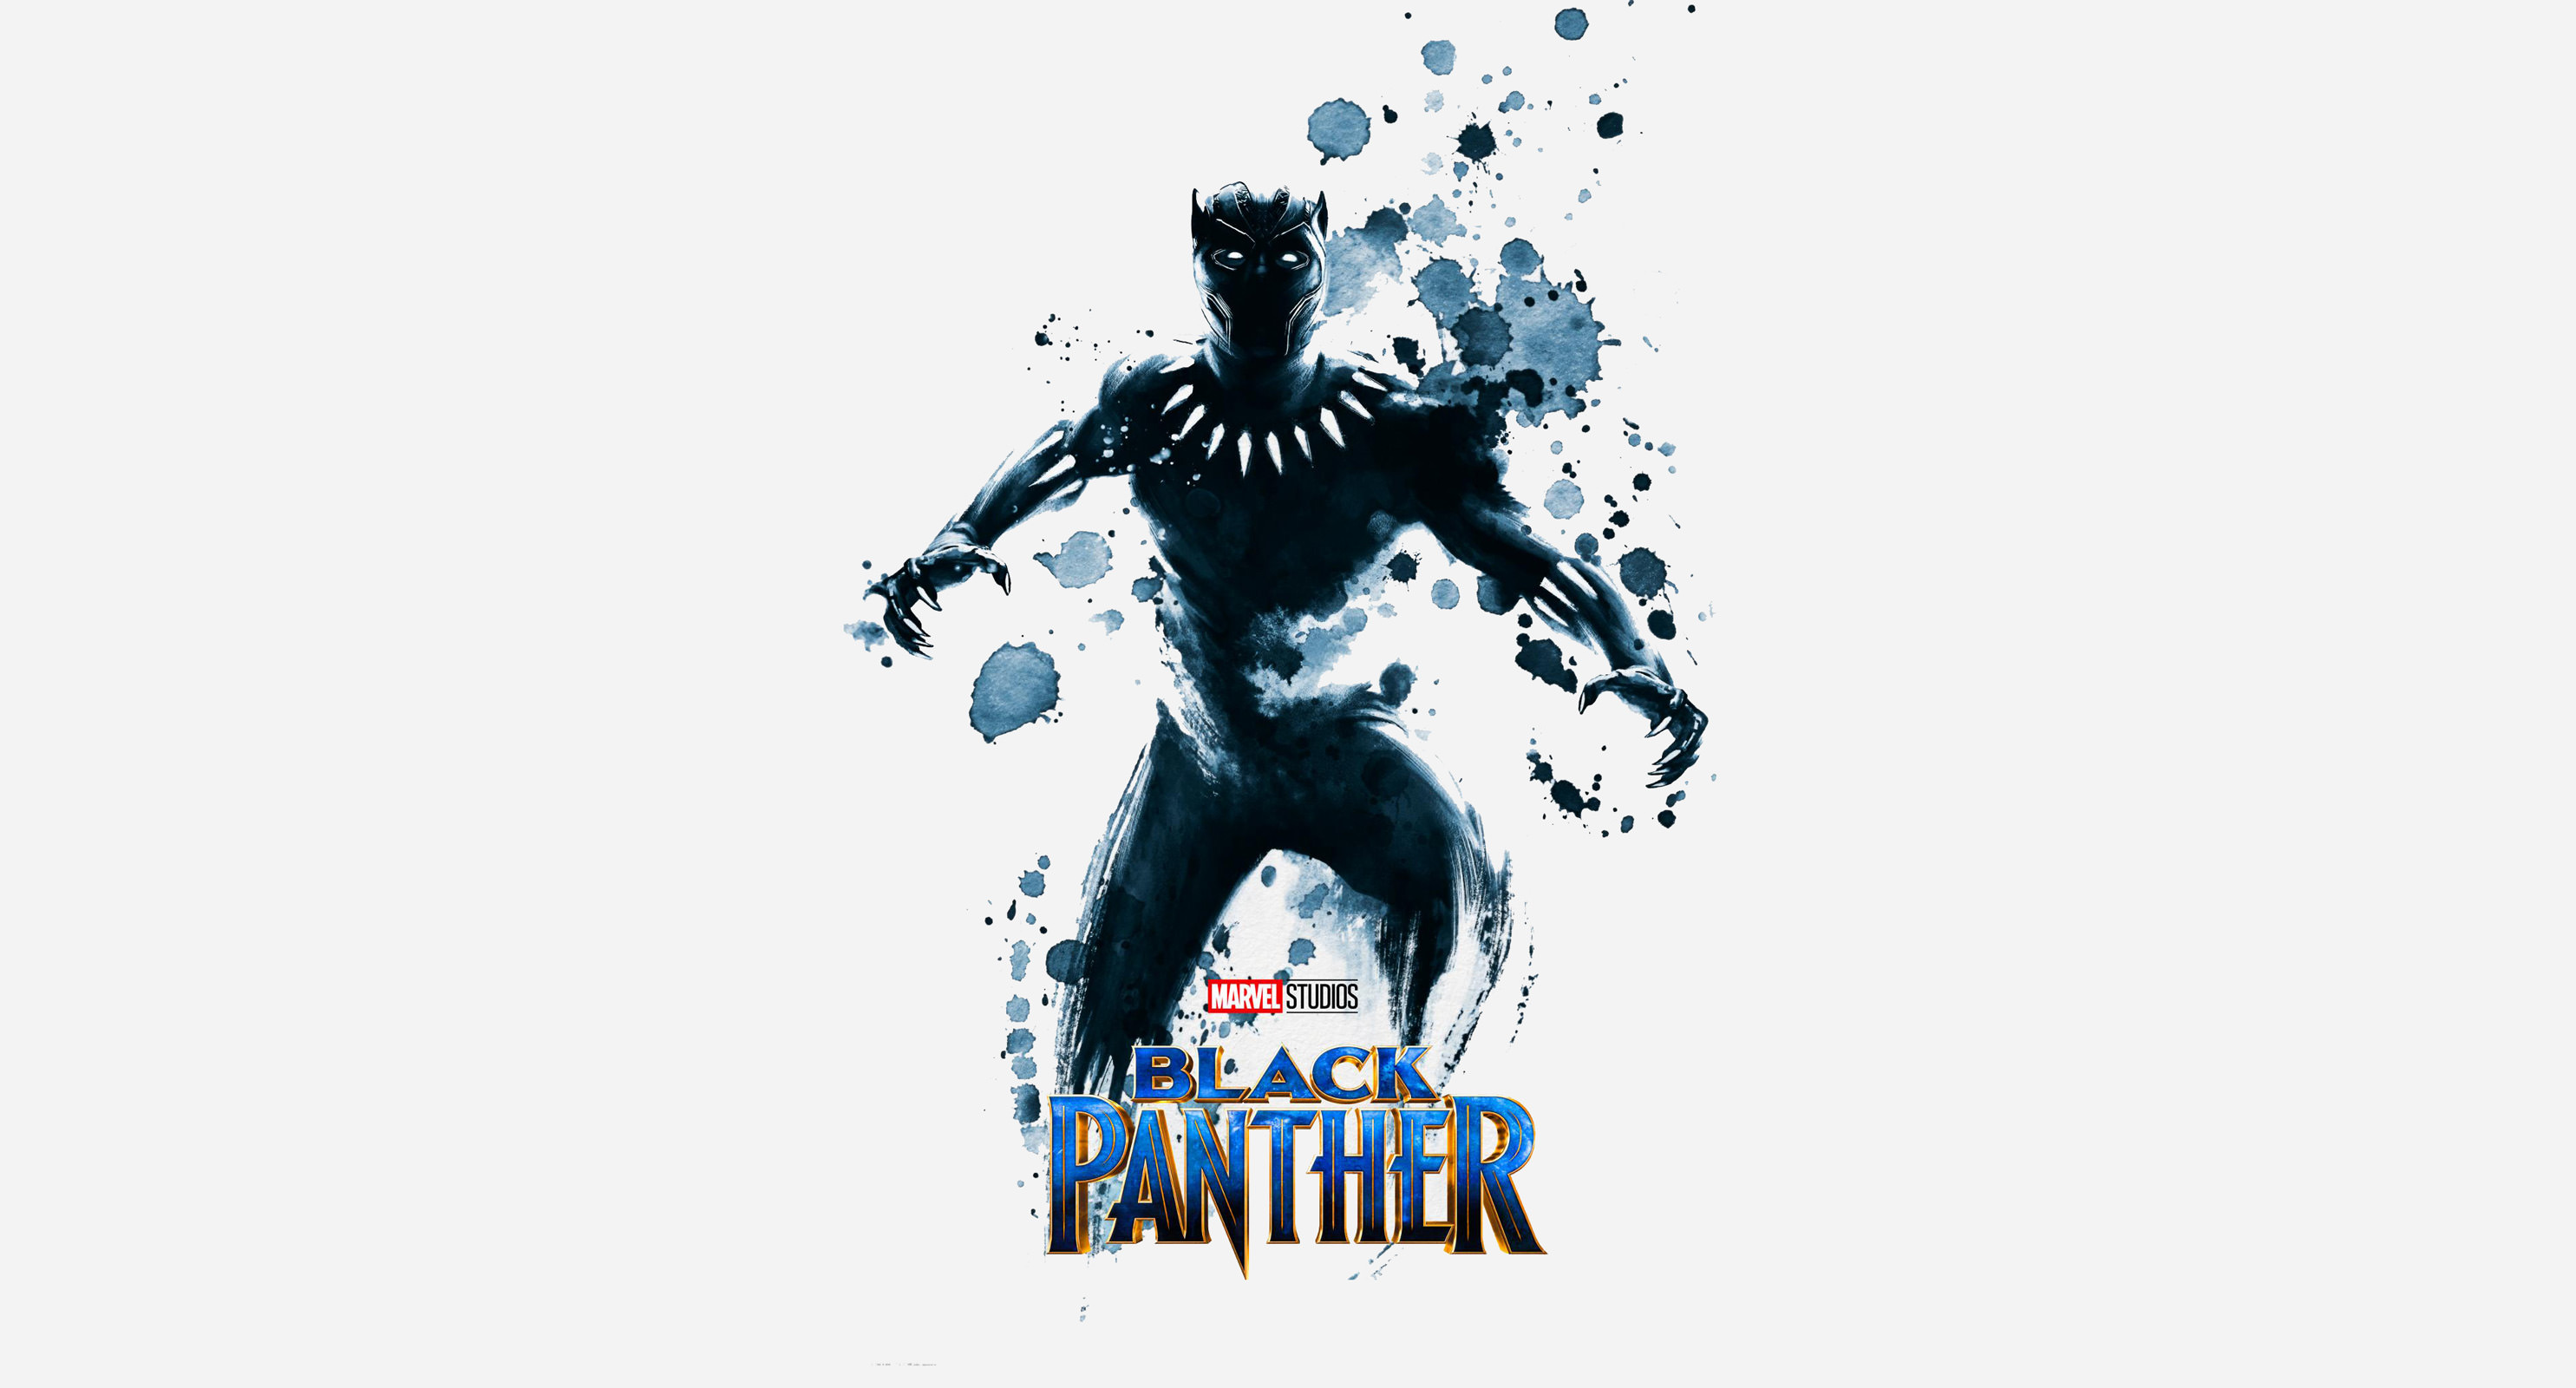 wallpapersden_com_black-panther-movie-official-poster_2970x1600.jpg